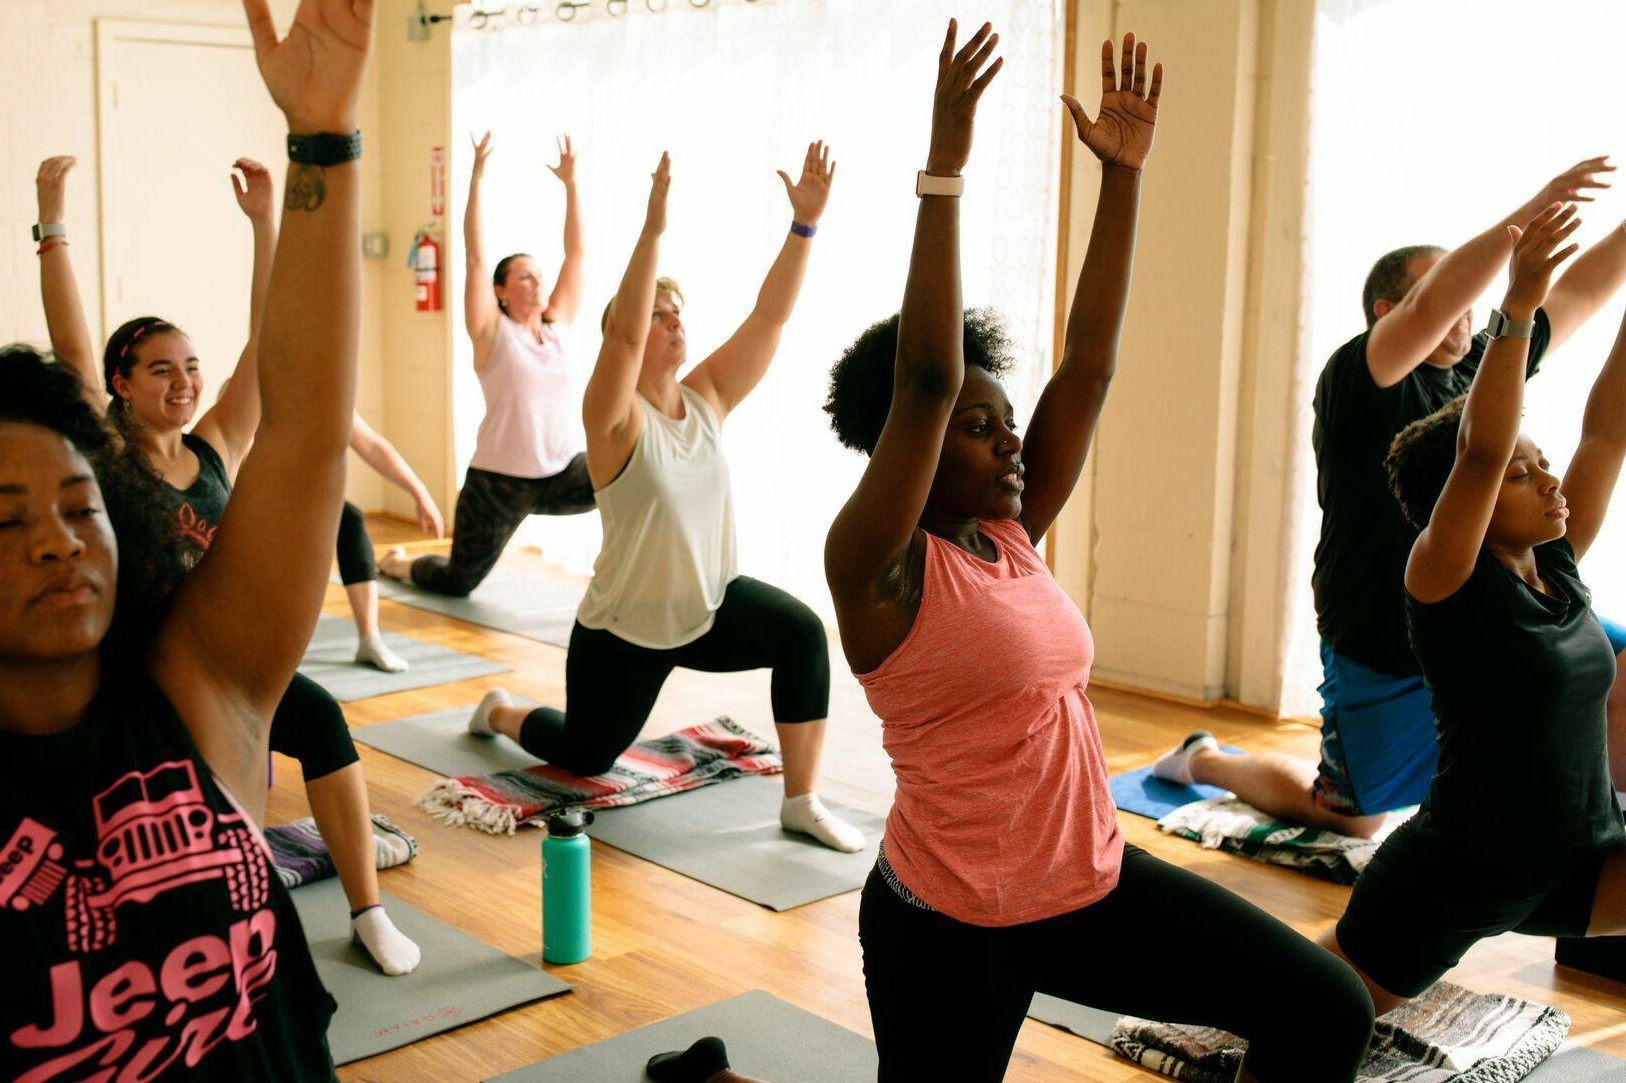 Welcome! - At The Yoga Room we make yoga approachable, affordable and fun. Each class is led by a certified yoga instructor who sees the vibrancy and strength in each person who enters our doors.Stop on by. We can't wait to meet you!